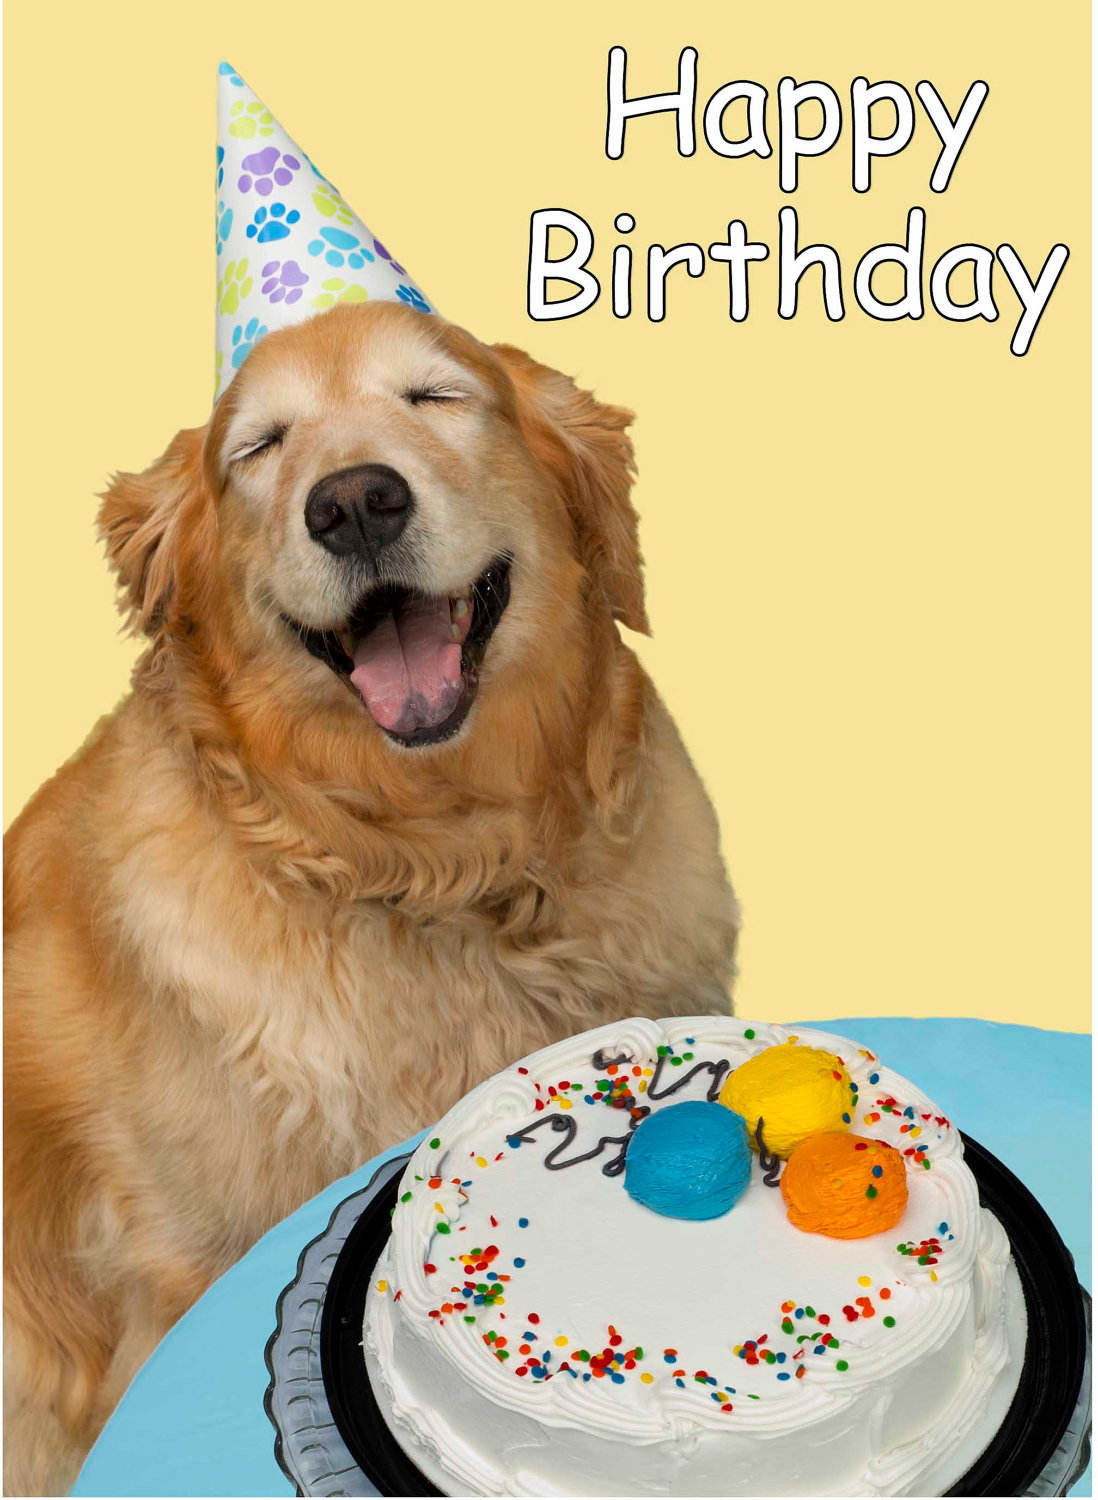 birthday wishes with dog picture ; Happy-Birthday-Wishes-Funny-Dog-Picture